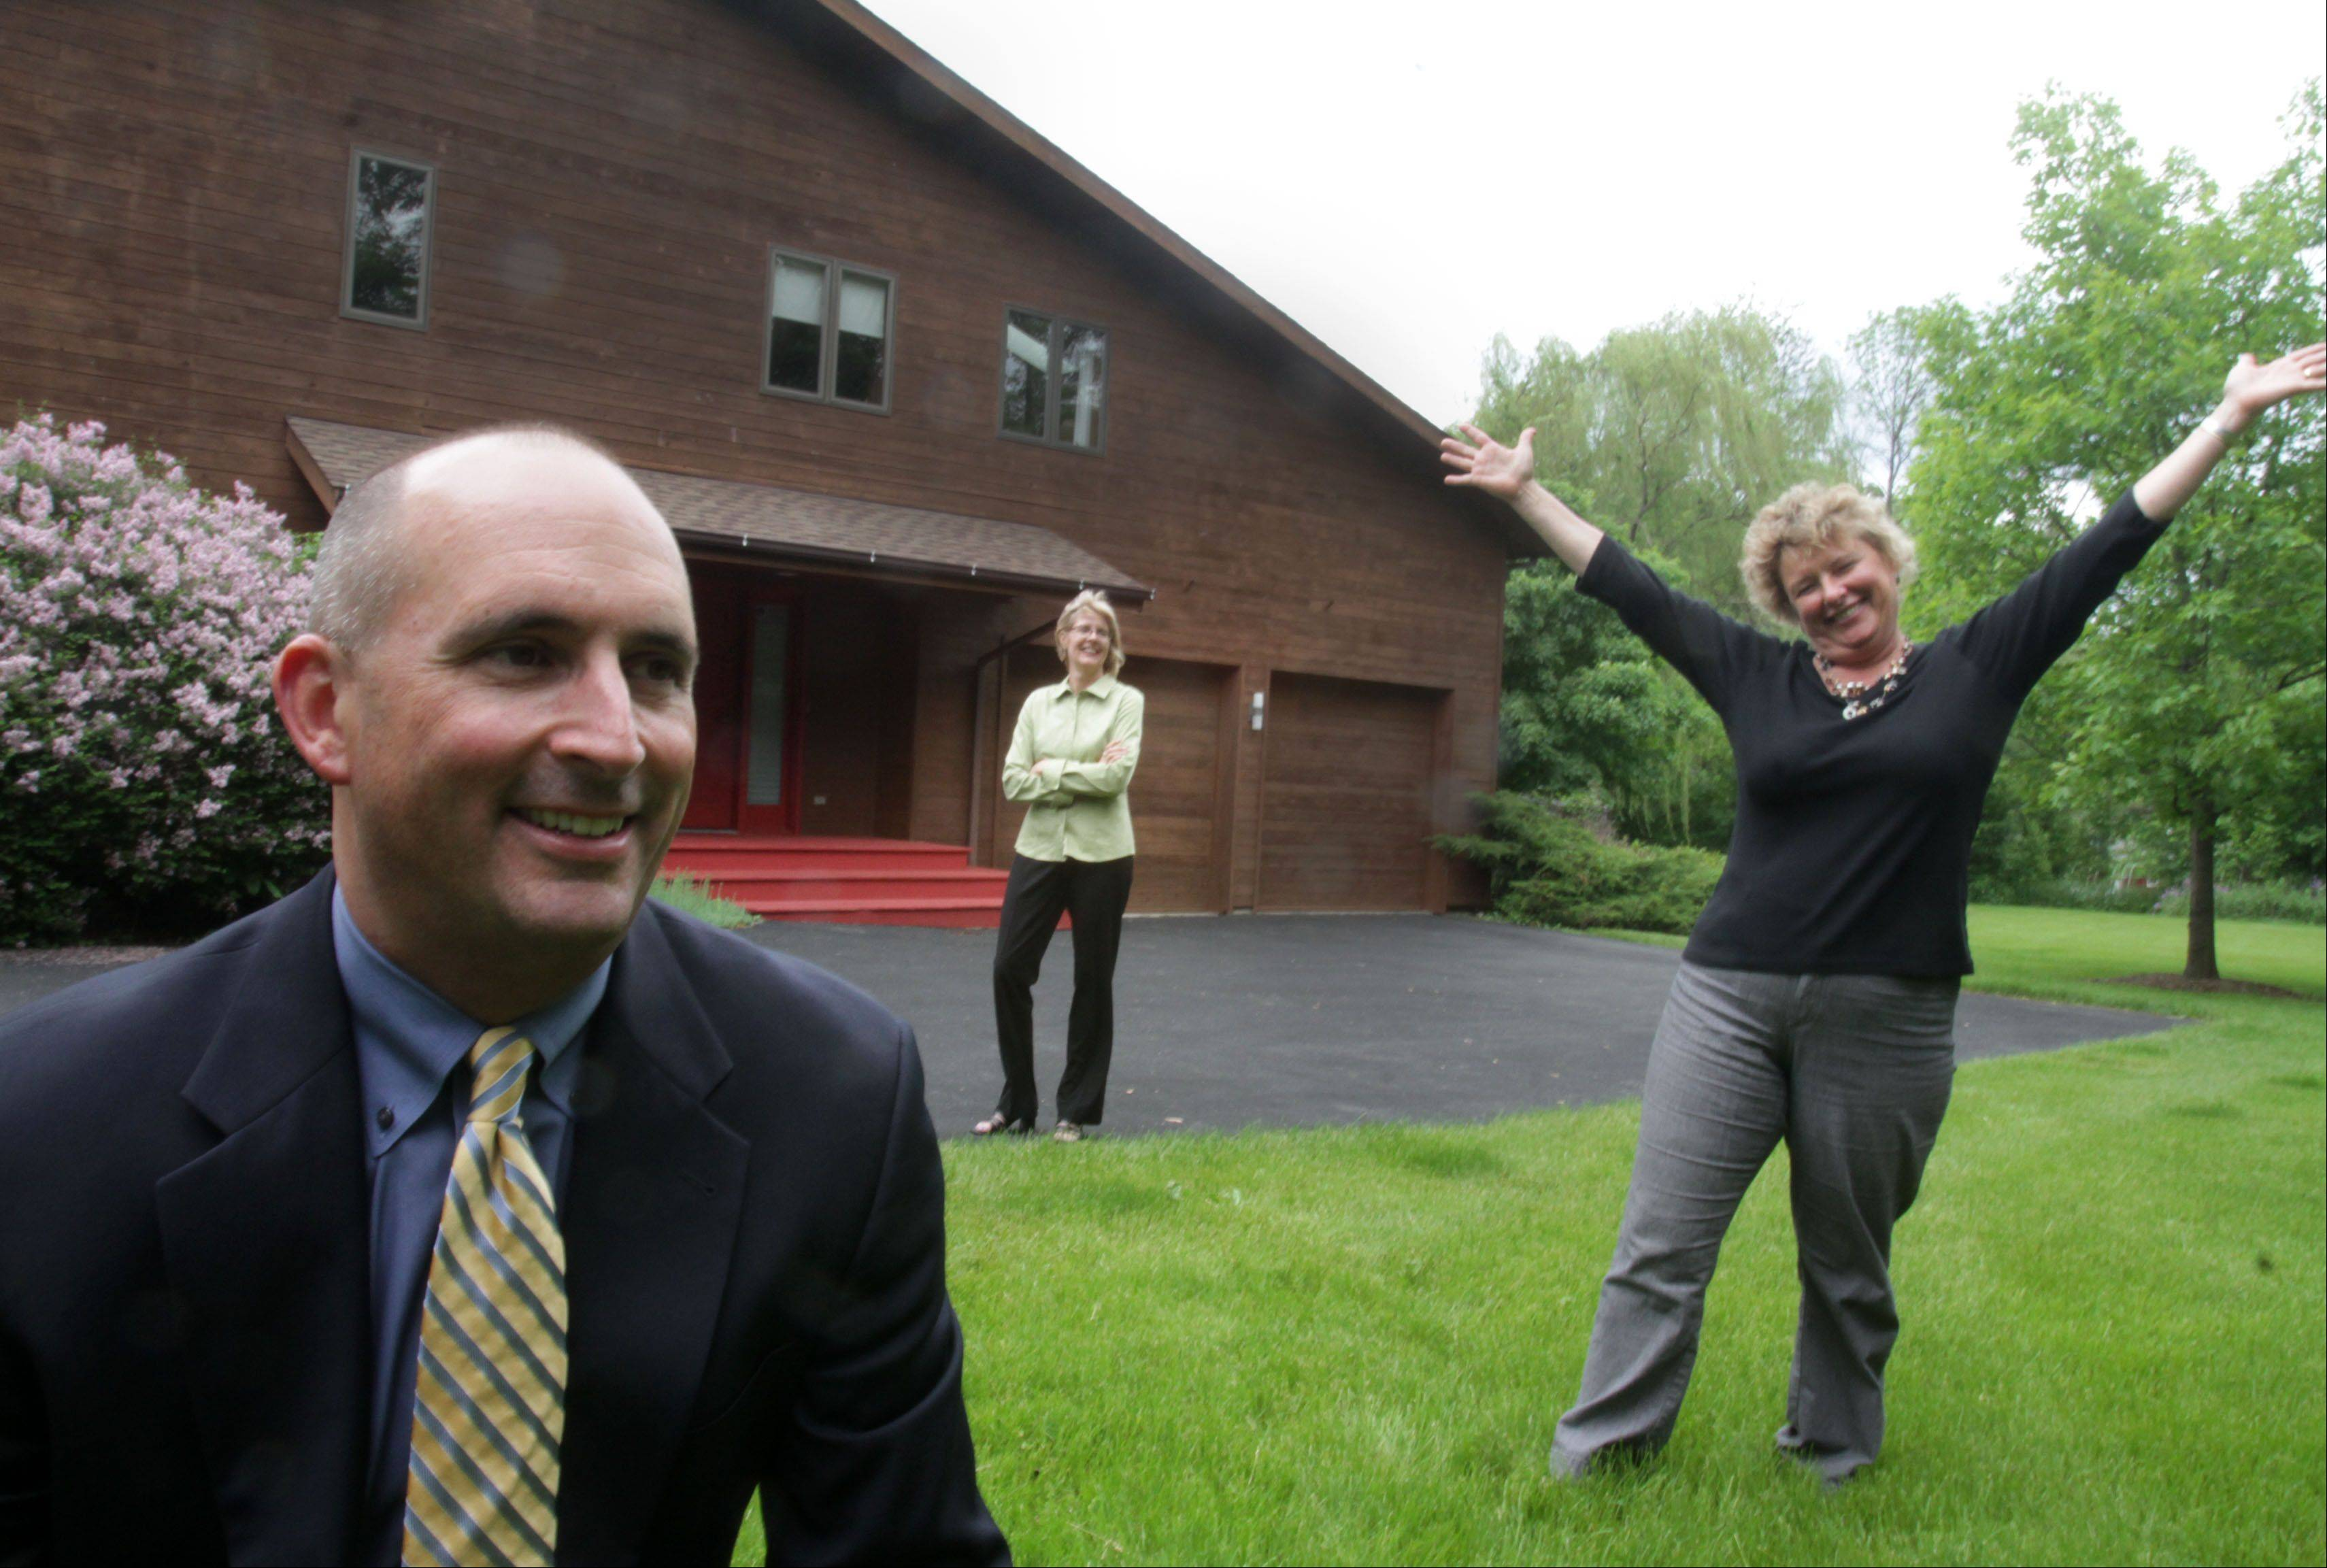 Realtor Mark Munro, left, former homeowner Irisa Putnins, right, and Mary Loughman, the stager, background, outside Putnins former home in Deer Park that they improved and sold in one day last year.